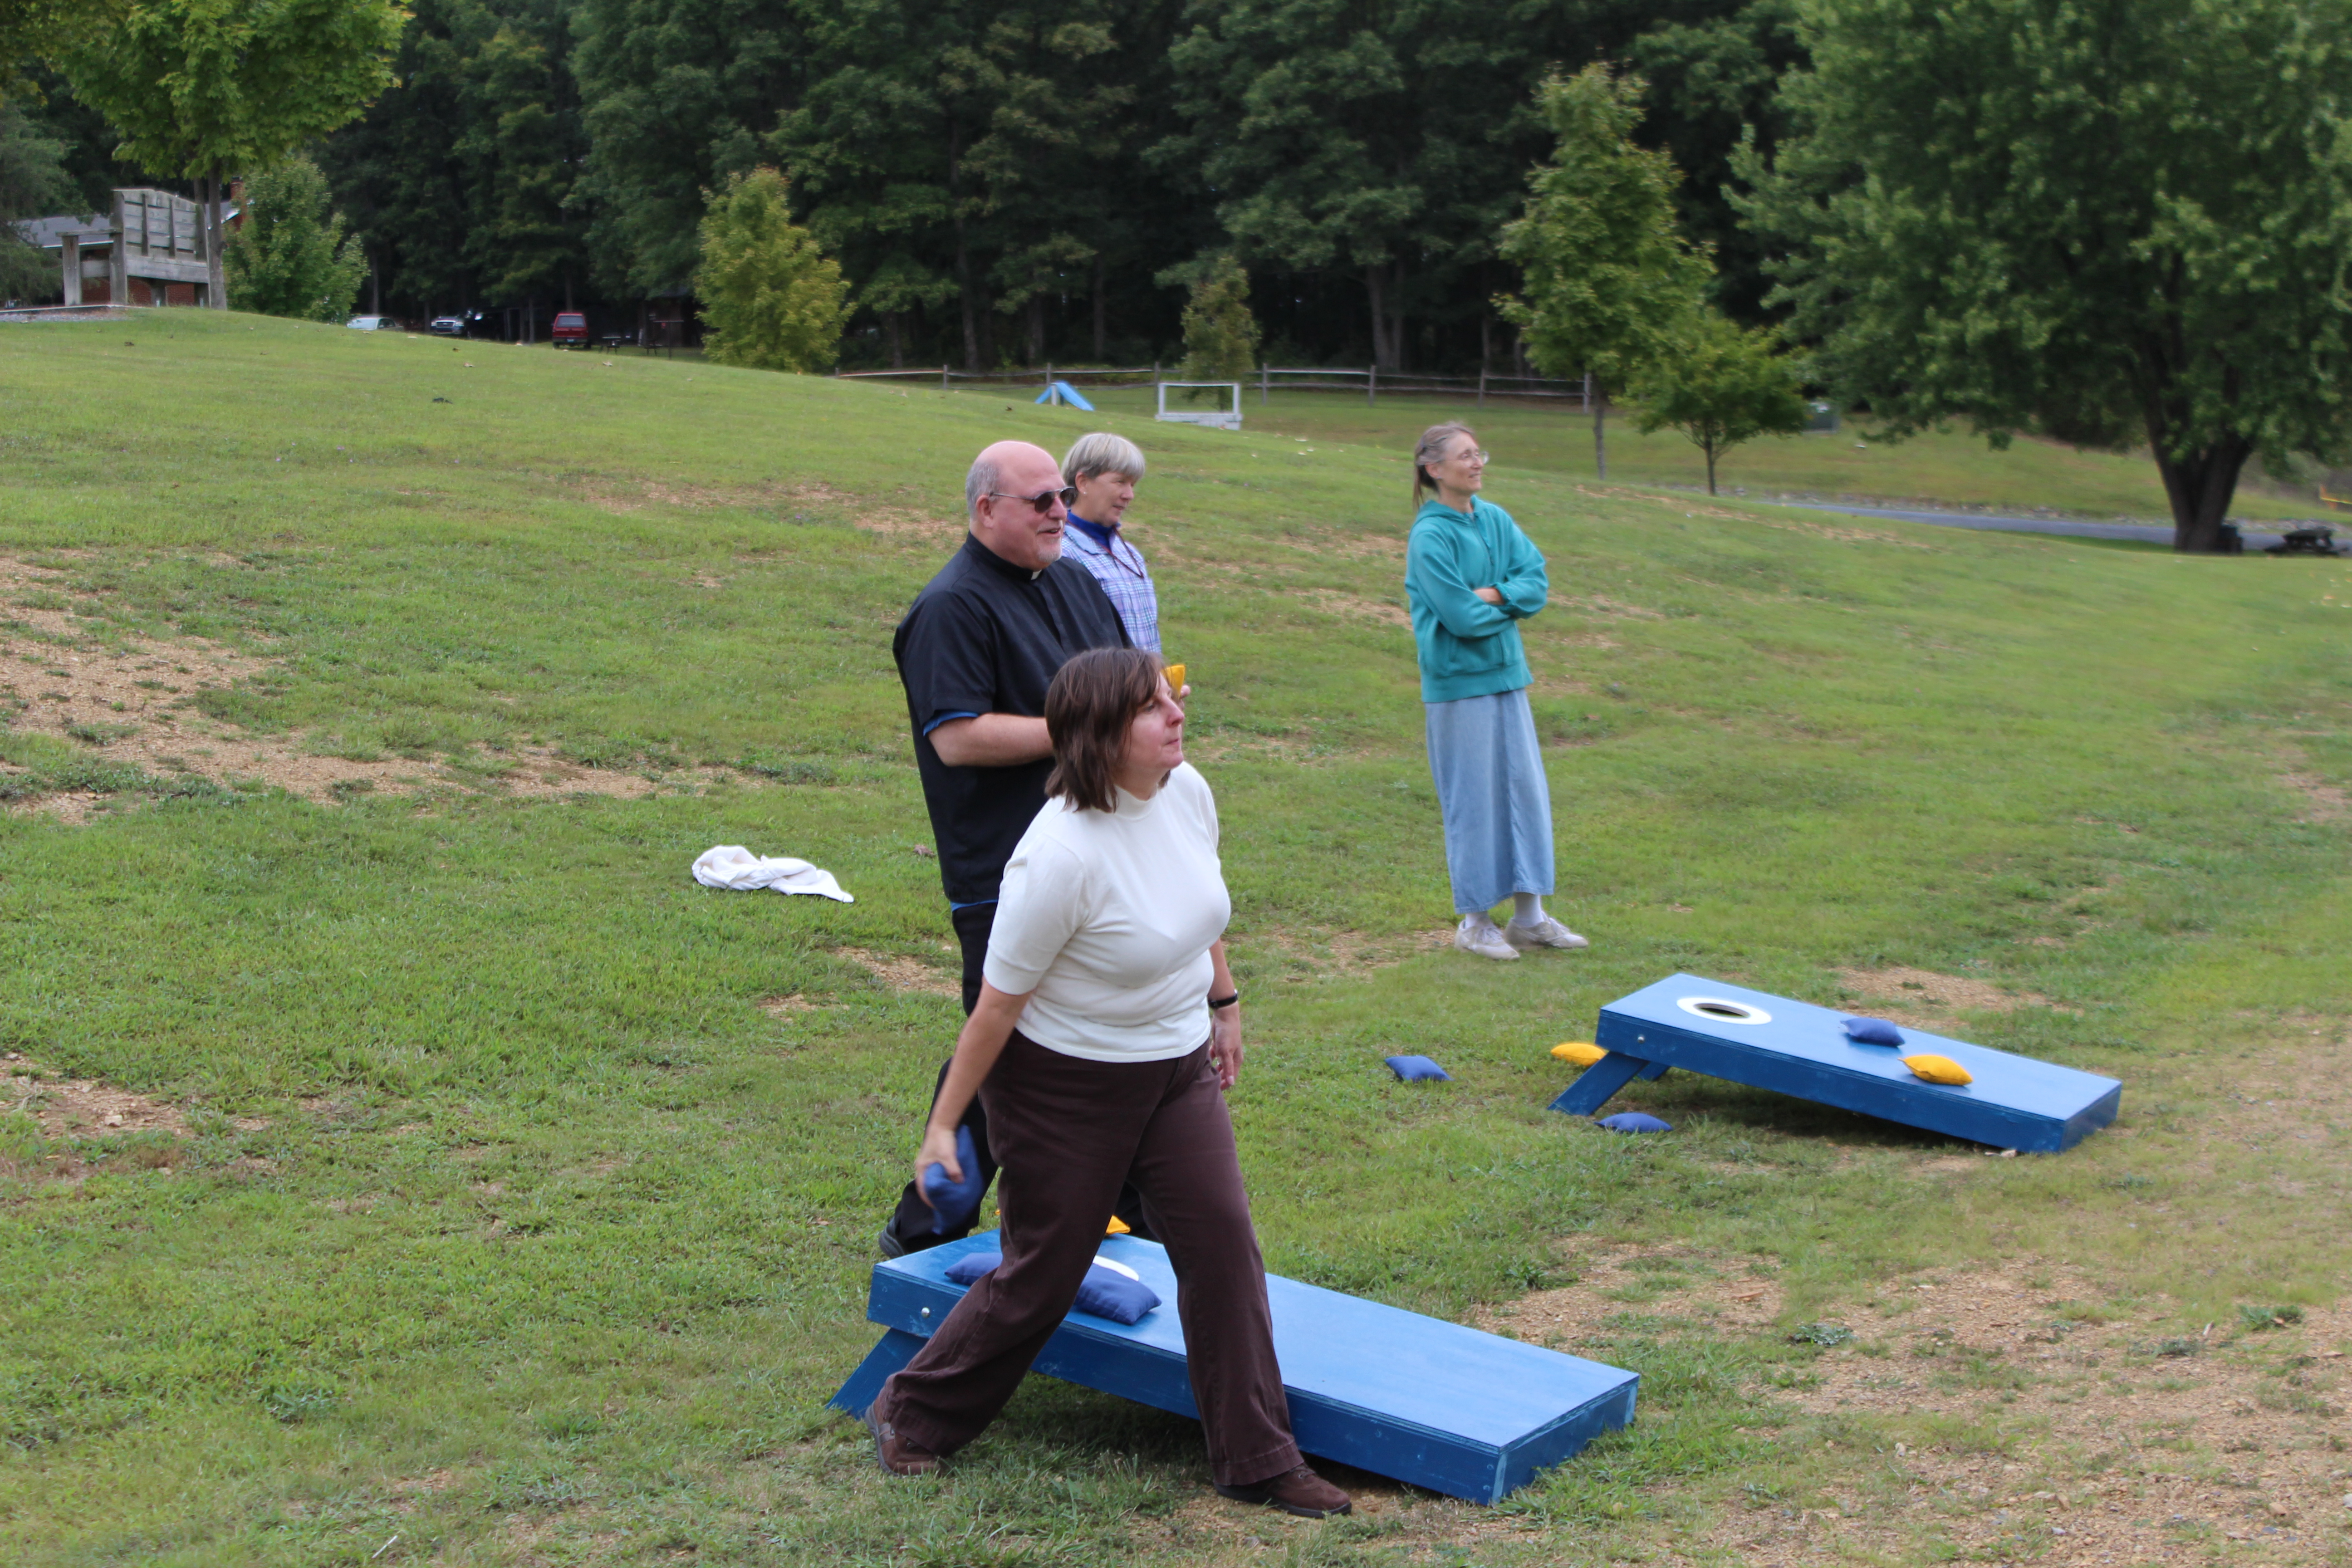 Becky C at the corn hole throw